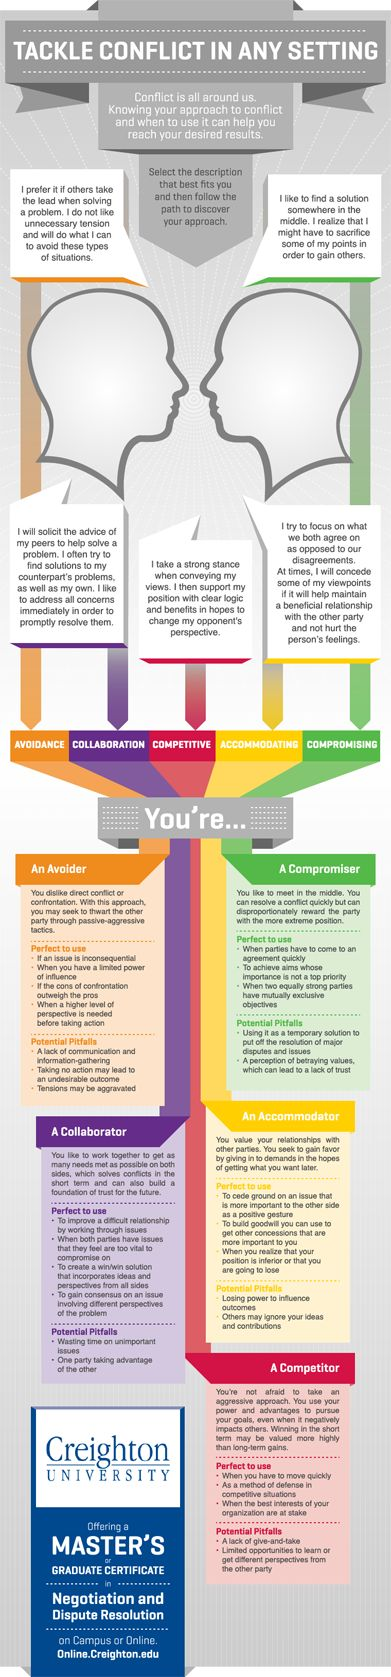 Conflict and disagreements are inevitable. This infographic serves as a tool for identifying your conflict management style, the pitfalls, and when it would be appropriate to use. It can be useful in resolving conflict and reaching desired results.The major categories are avoidance, collaboration, competitive, accommodating, and compromising.